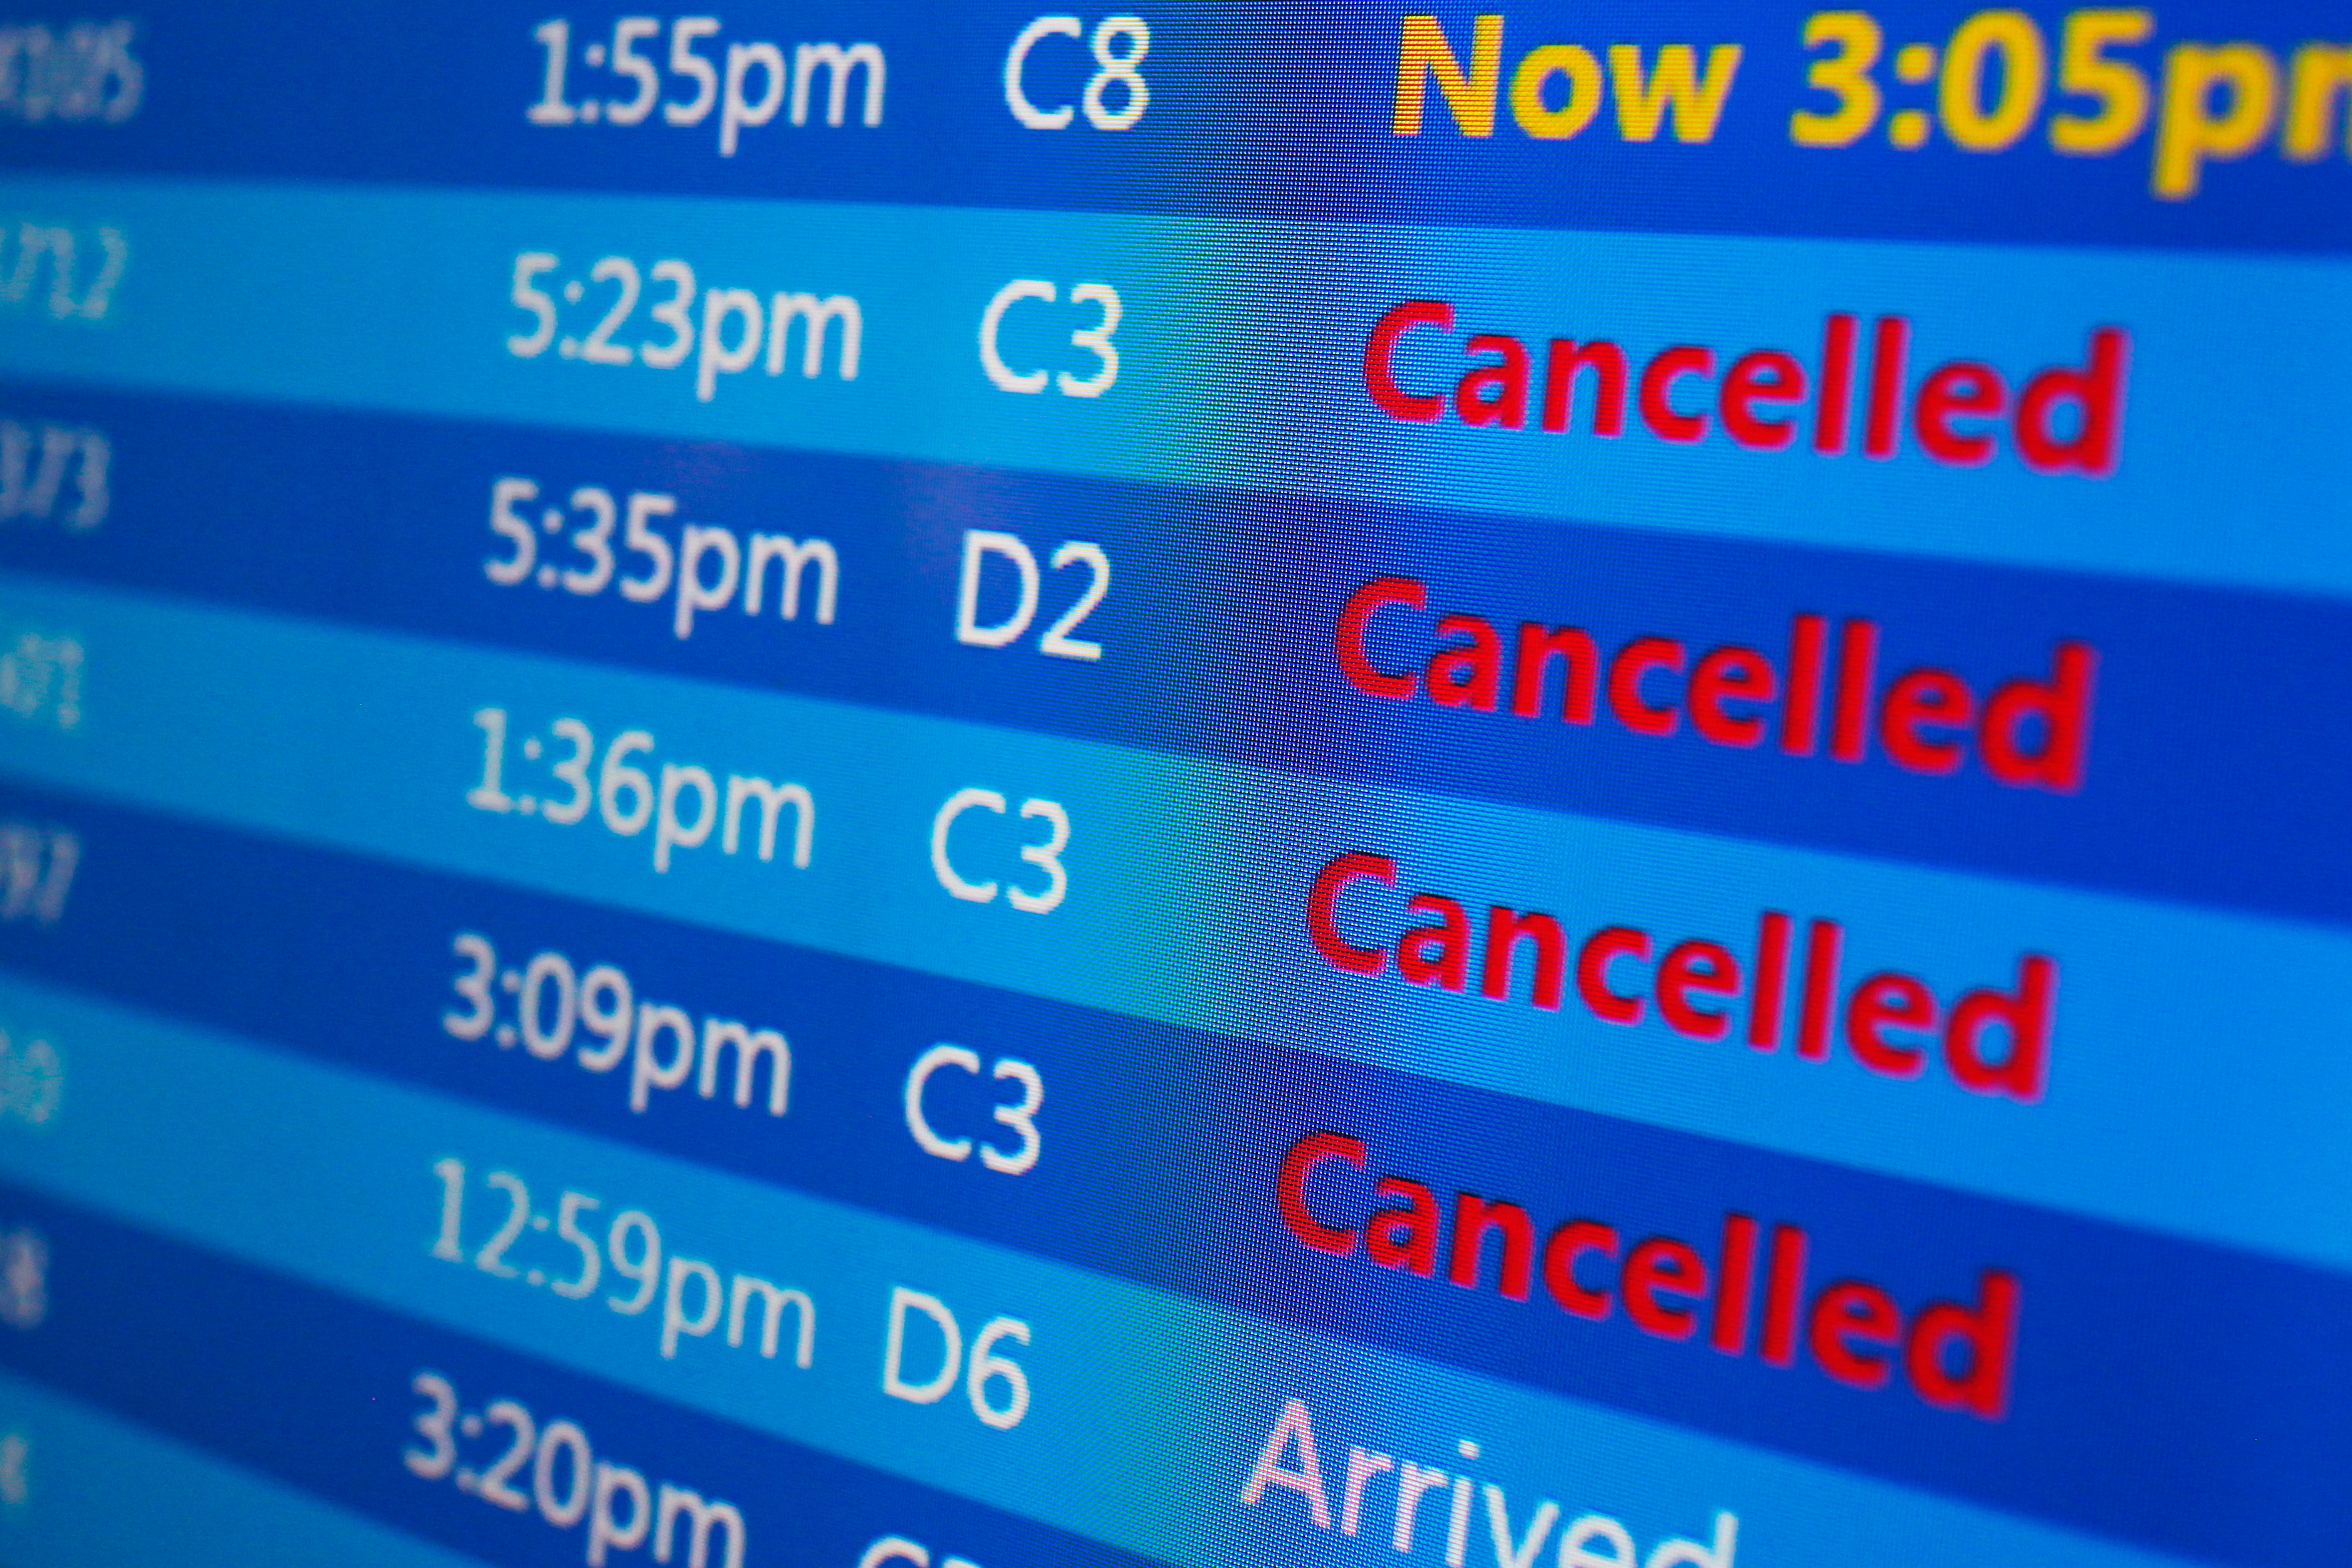 Cancelled flights are displayed on a status board at New York's Laguardia Airport ahead of a powerful approaching winter storm